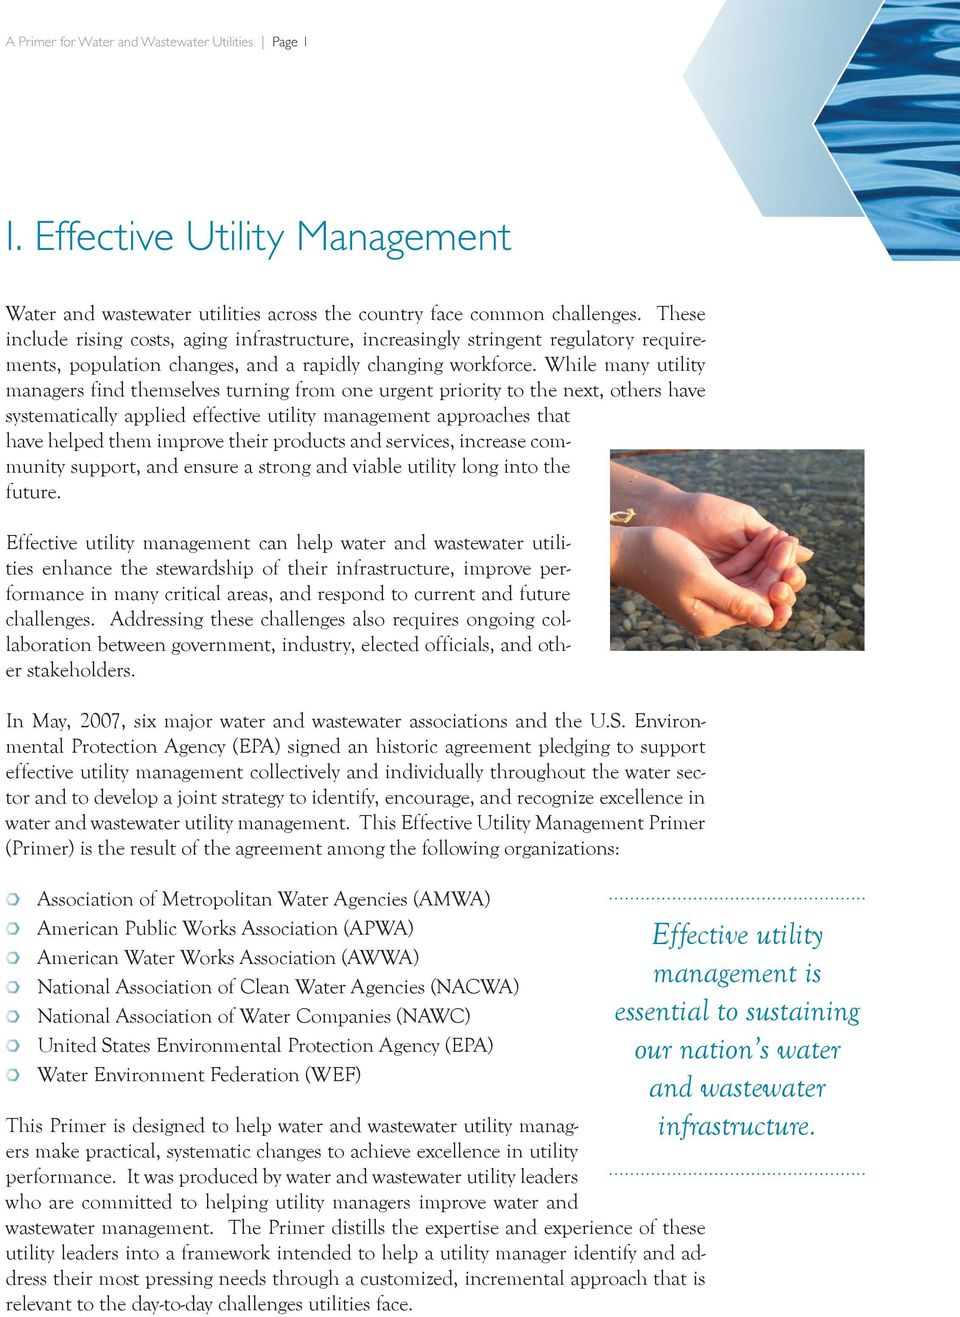 While many utility managers find themselves turning from one urgent priority to the next, others have systematically applied effective utility management approaches that have helped them improve